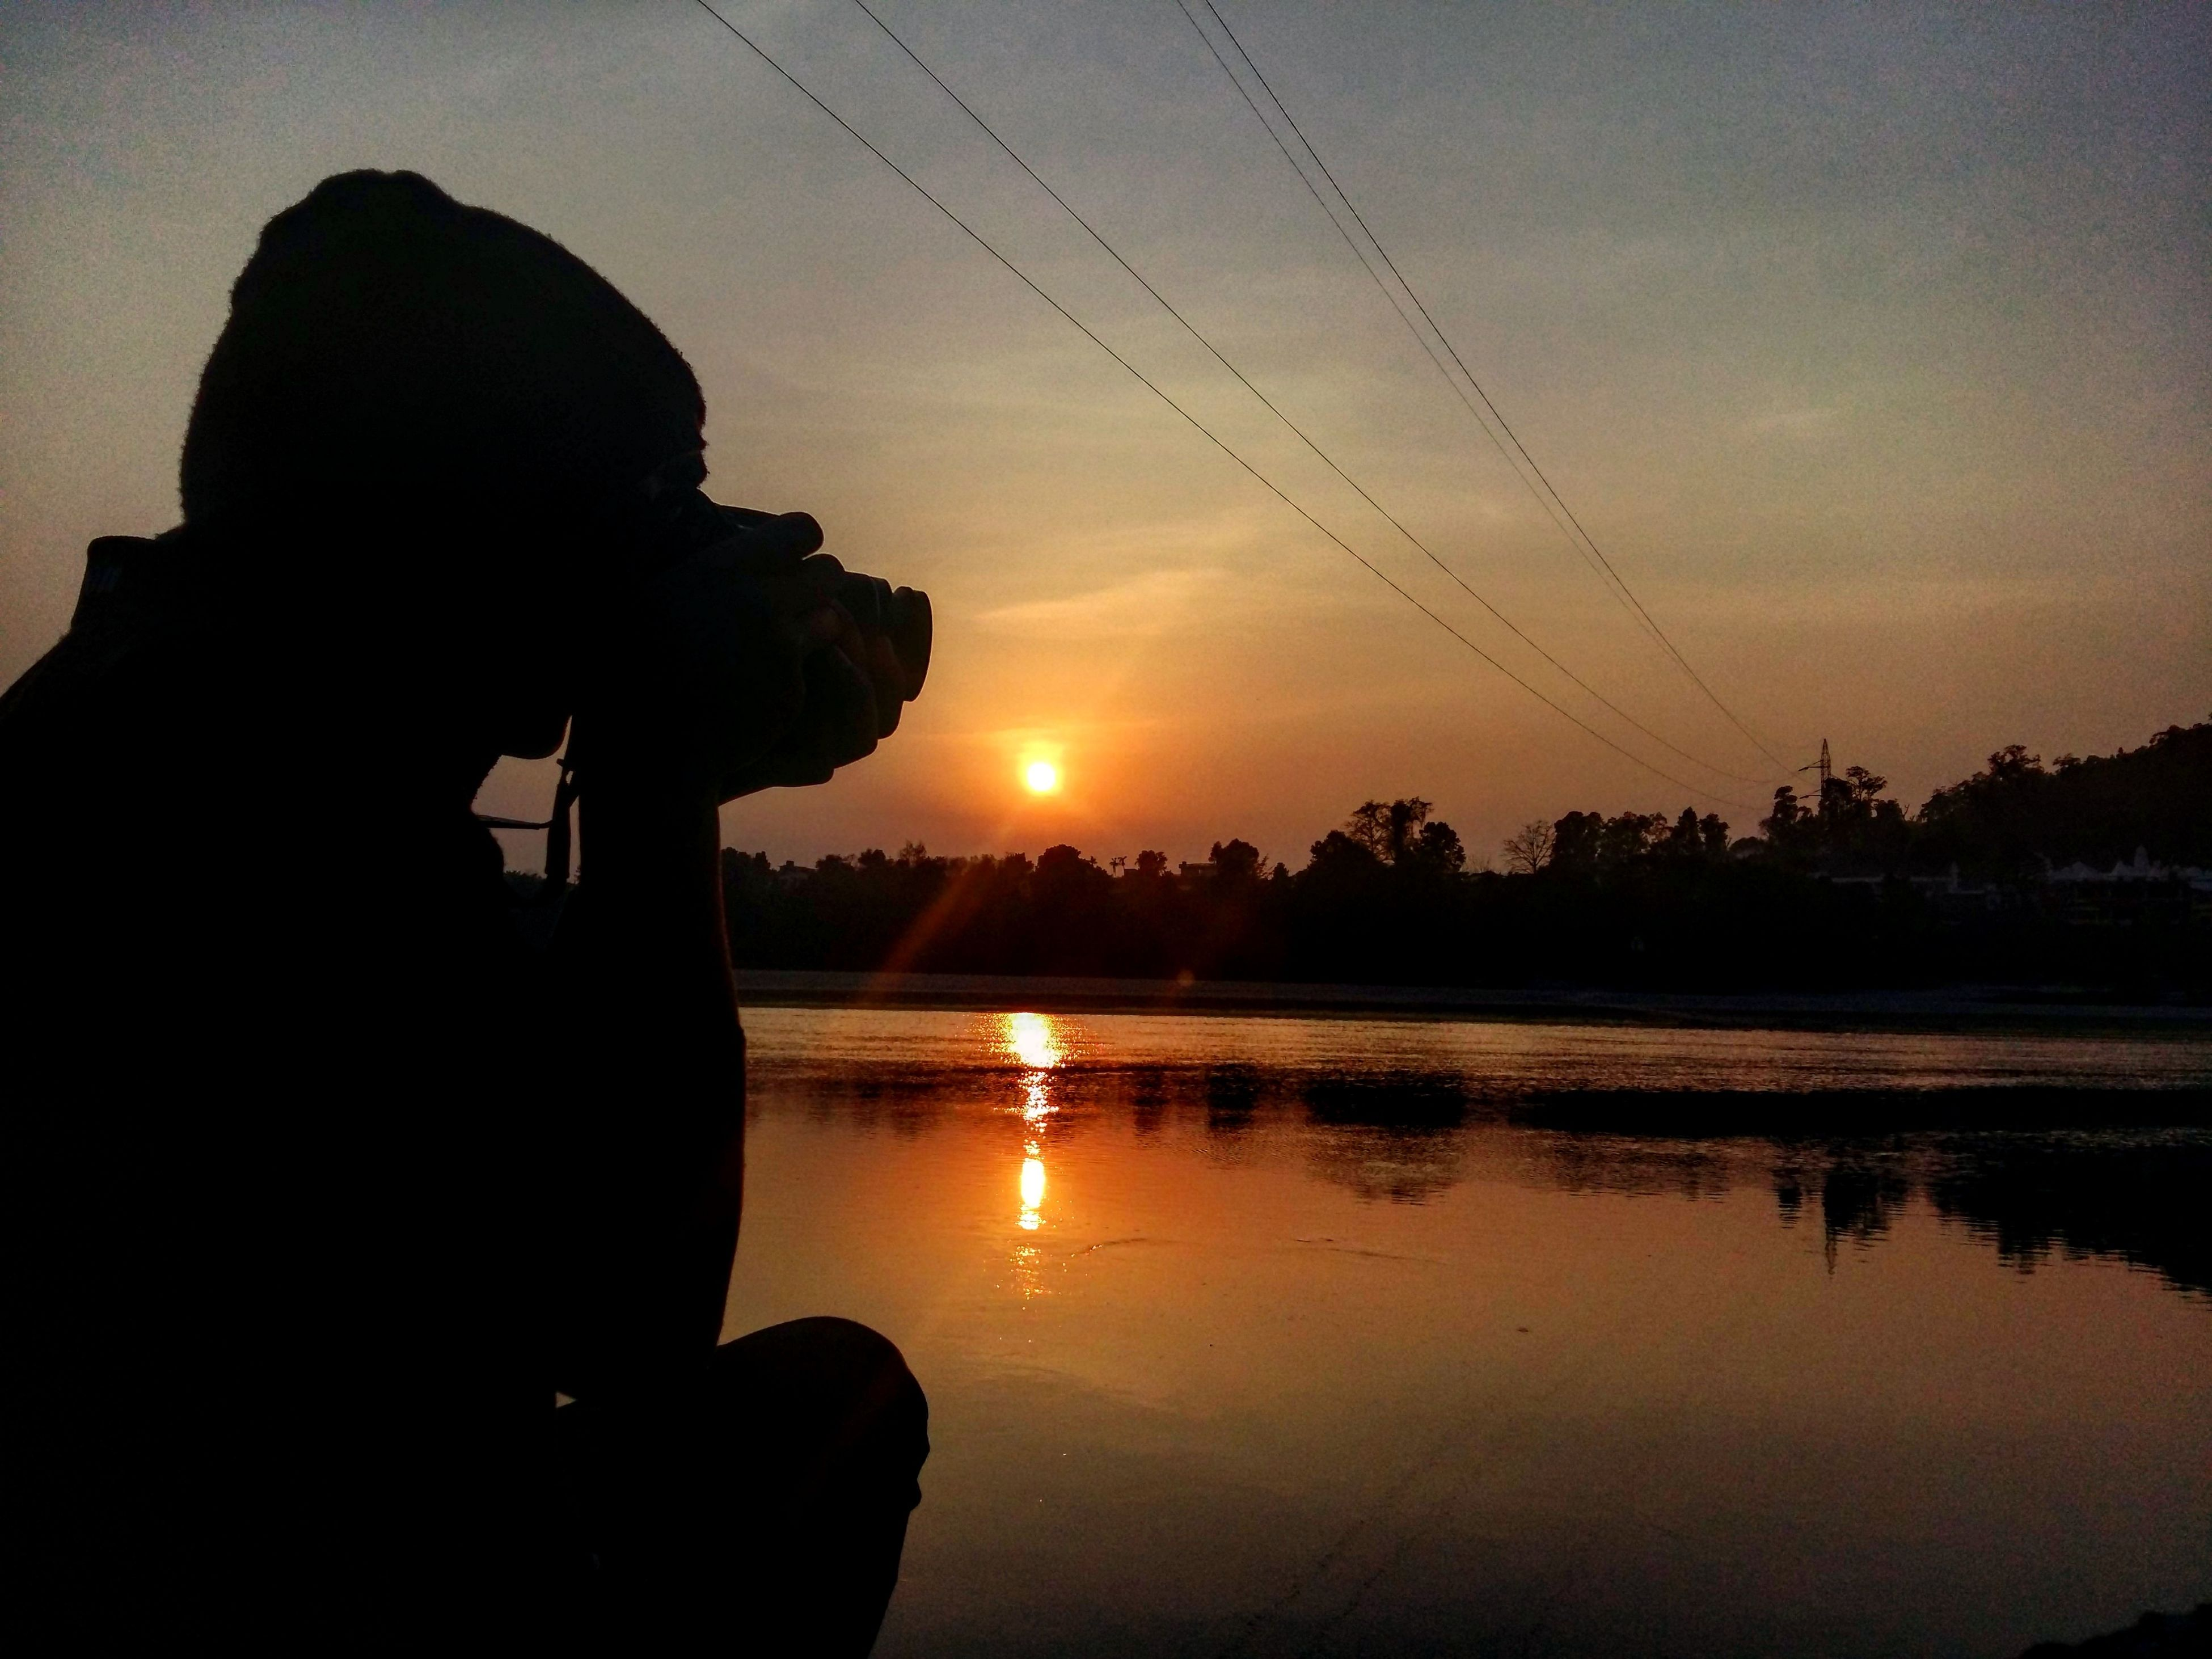 sunset, silhouette, sun, water, scenics, orange color, reflection, tranquility, sky, tranquil scene, beauty in nature, idyllic, nature, sea, lake, one person, sunlight, outdoors, calm, outline